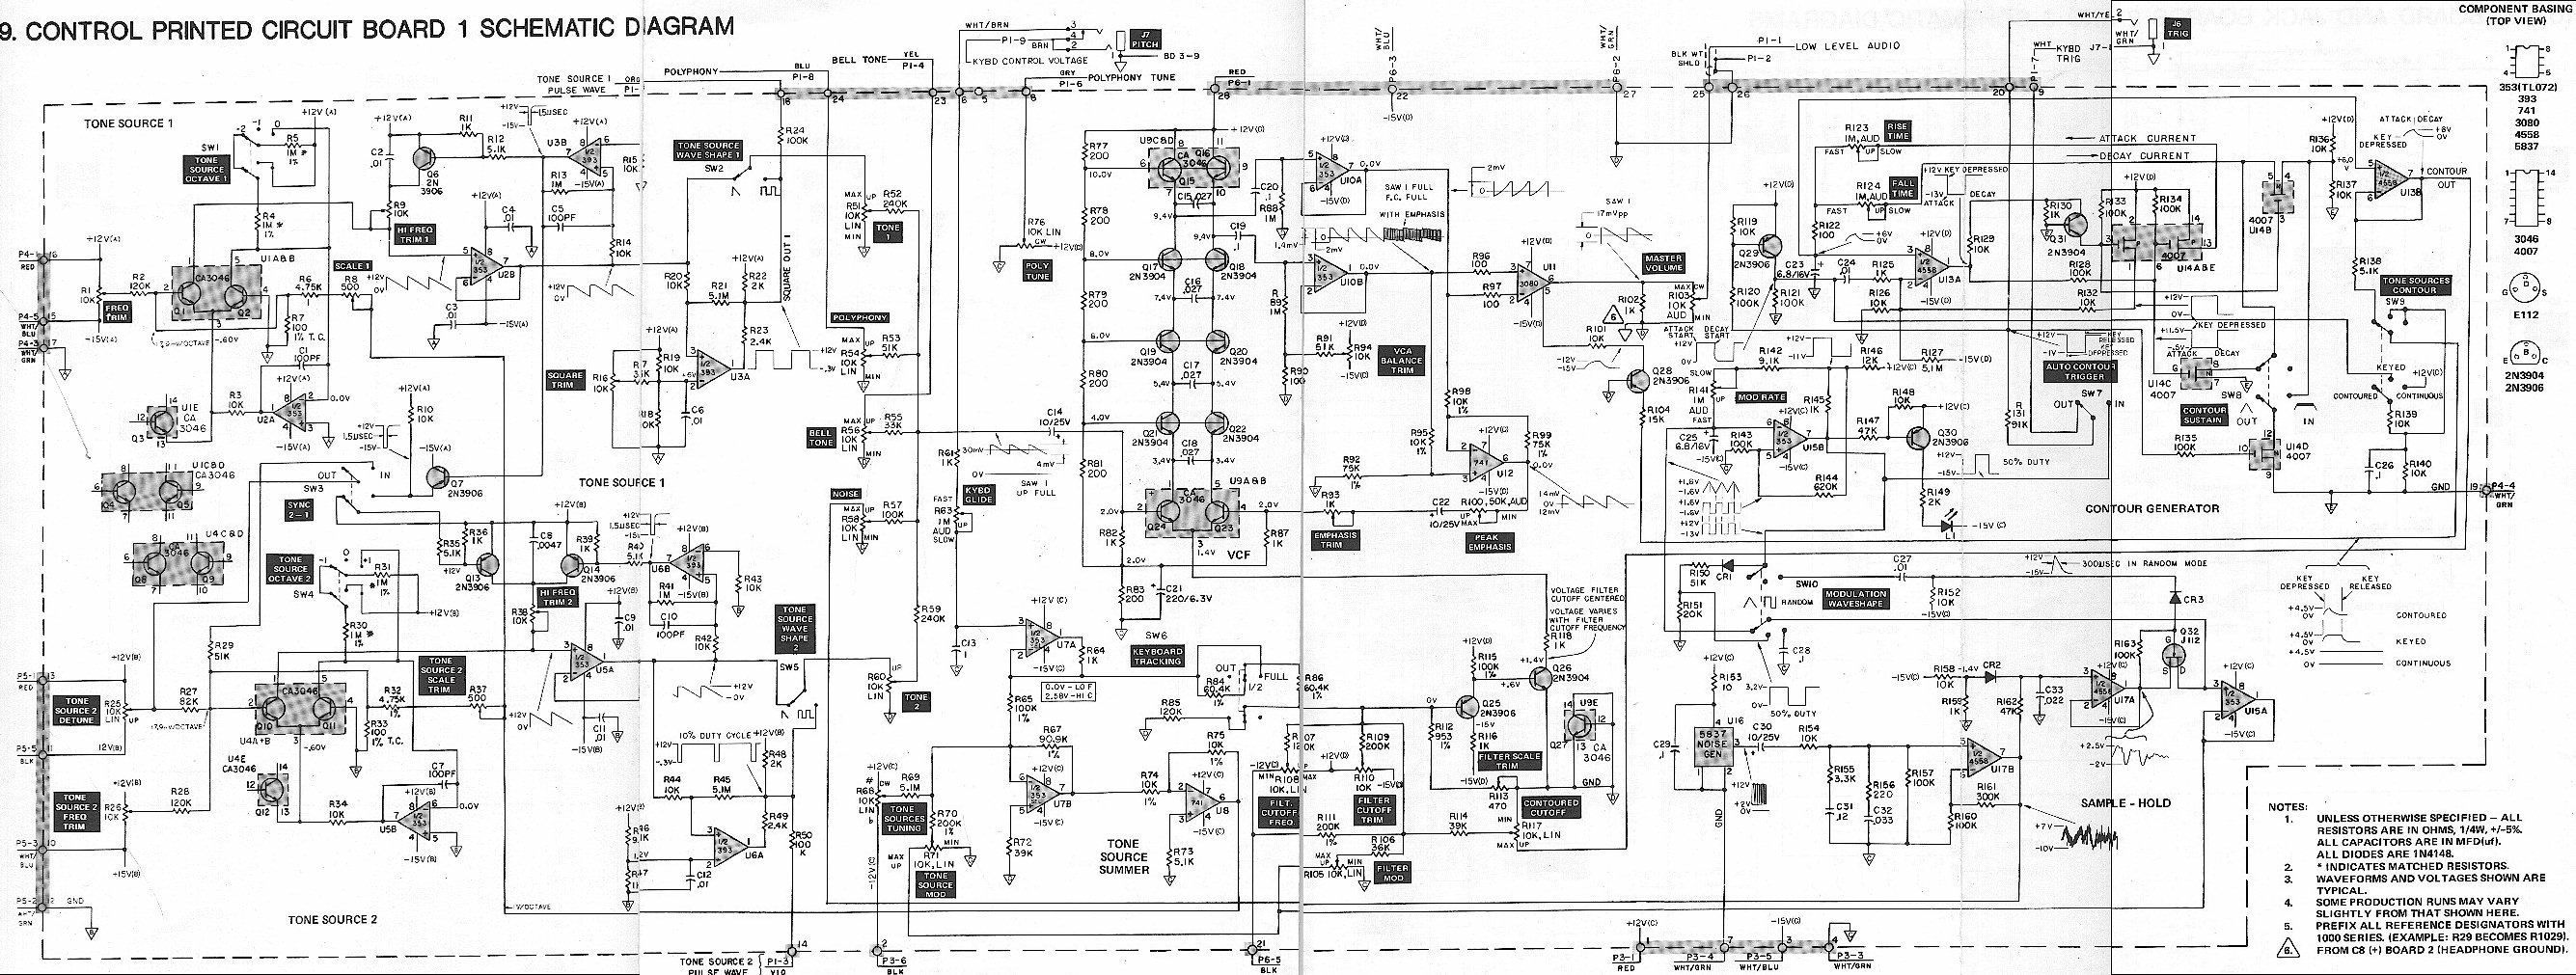 [WRG-1056] Radio Shack Schematic Diagrams